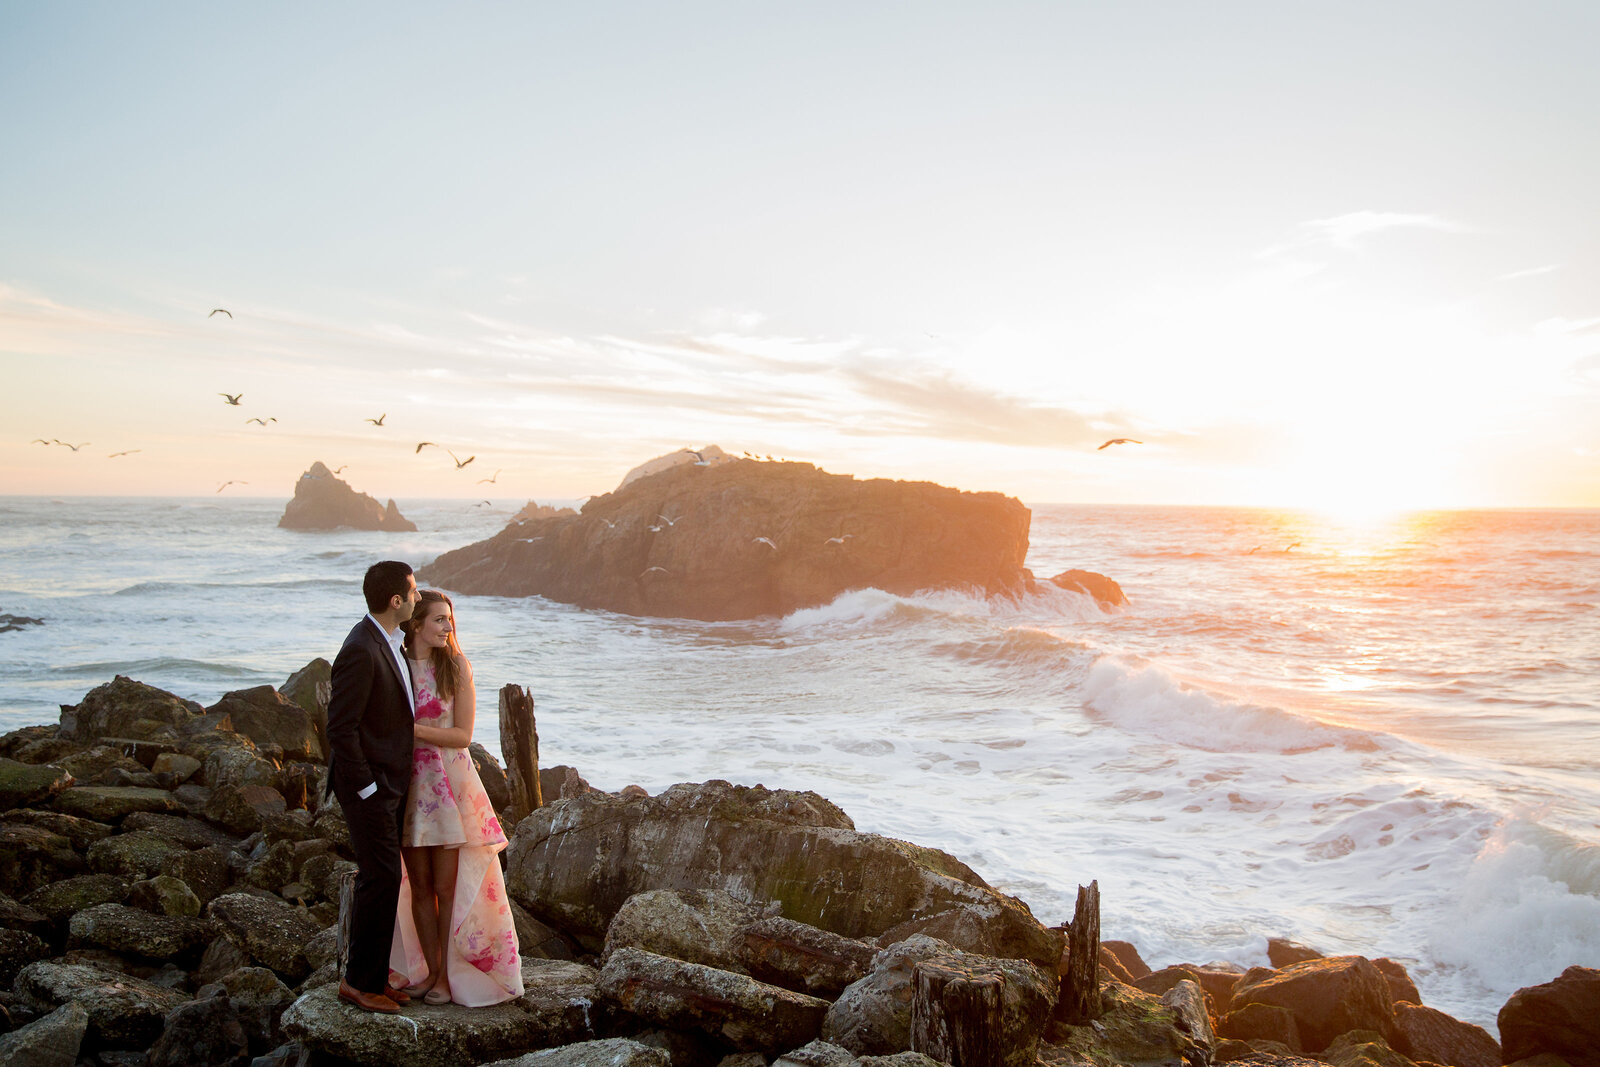 047-larissa-cleveland-engaged-wedding_photographer-san-francisco-carmel-napa-california-larissa-cleveland-photography-sj-engaged-159